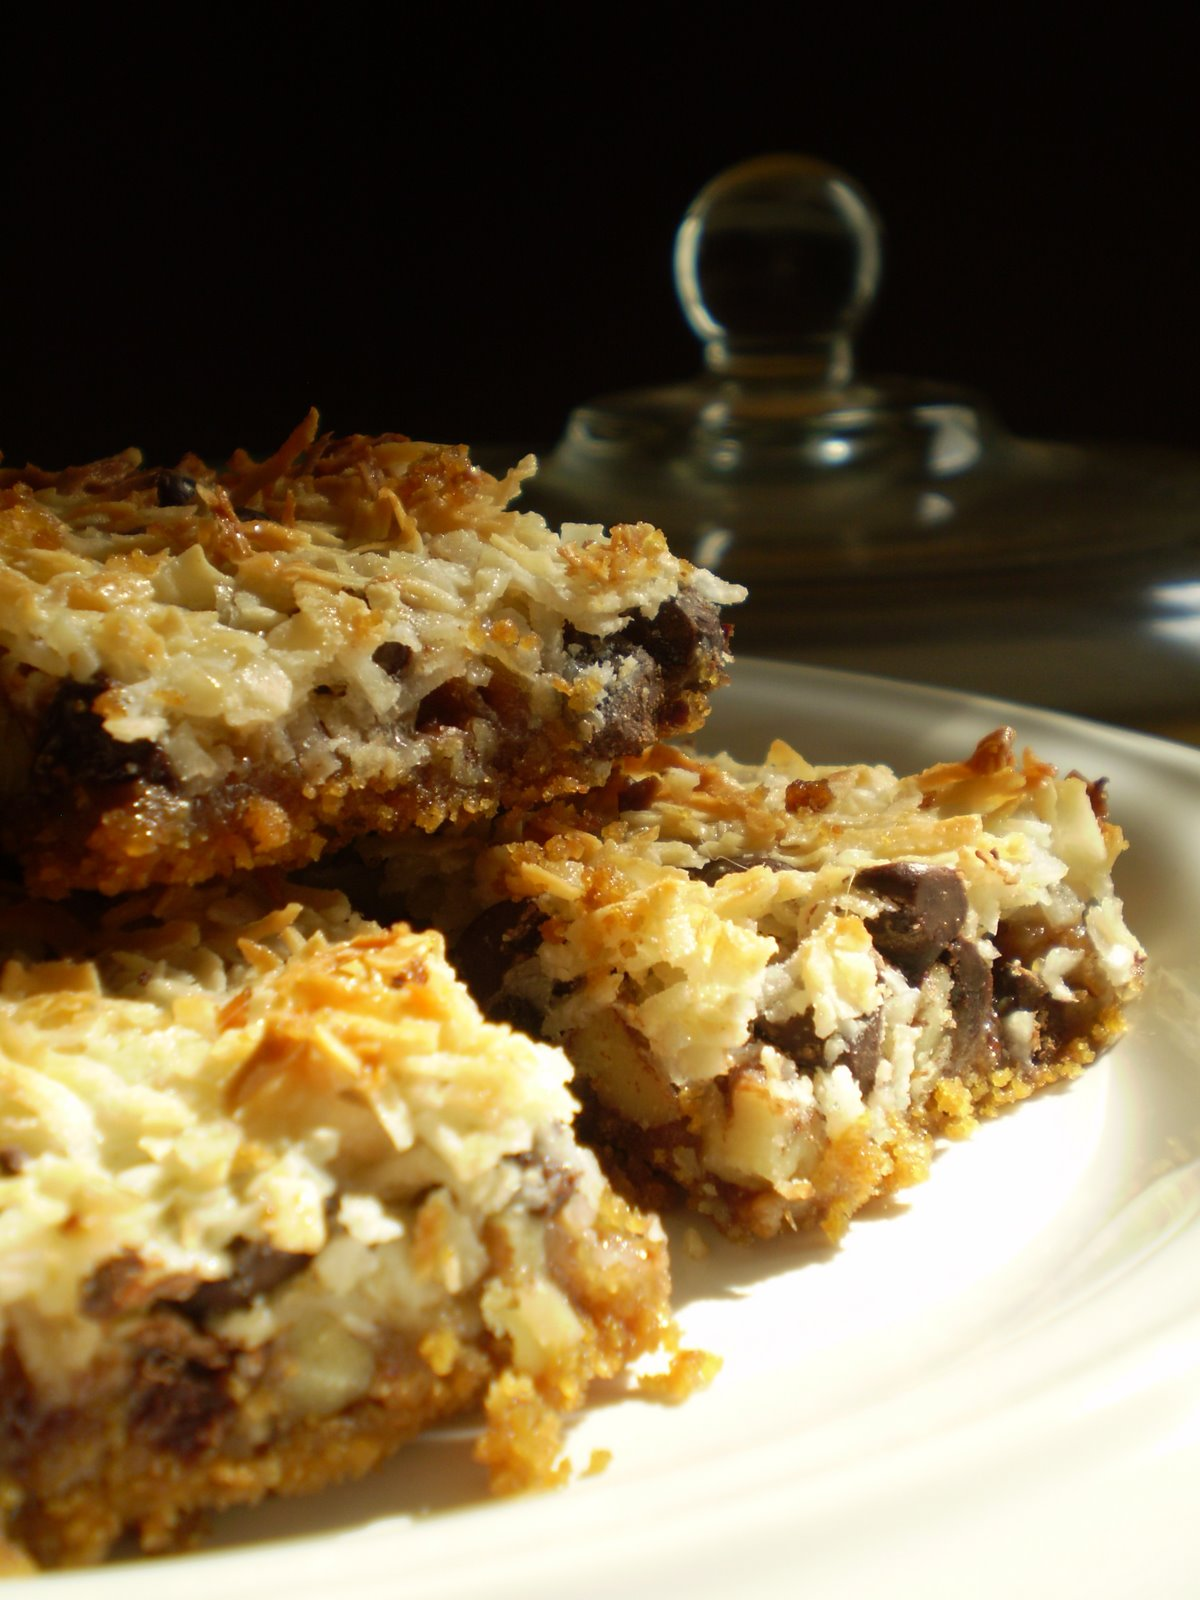 7 Layer Bars Eagle Brand http://www.thebloomingplatter.com/vegan-chocolate-desserts/vegan-eagle-brand-seven-layer-magic-cookie-bars